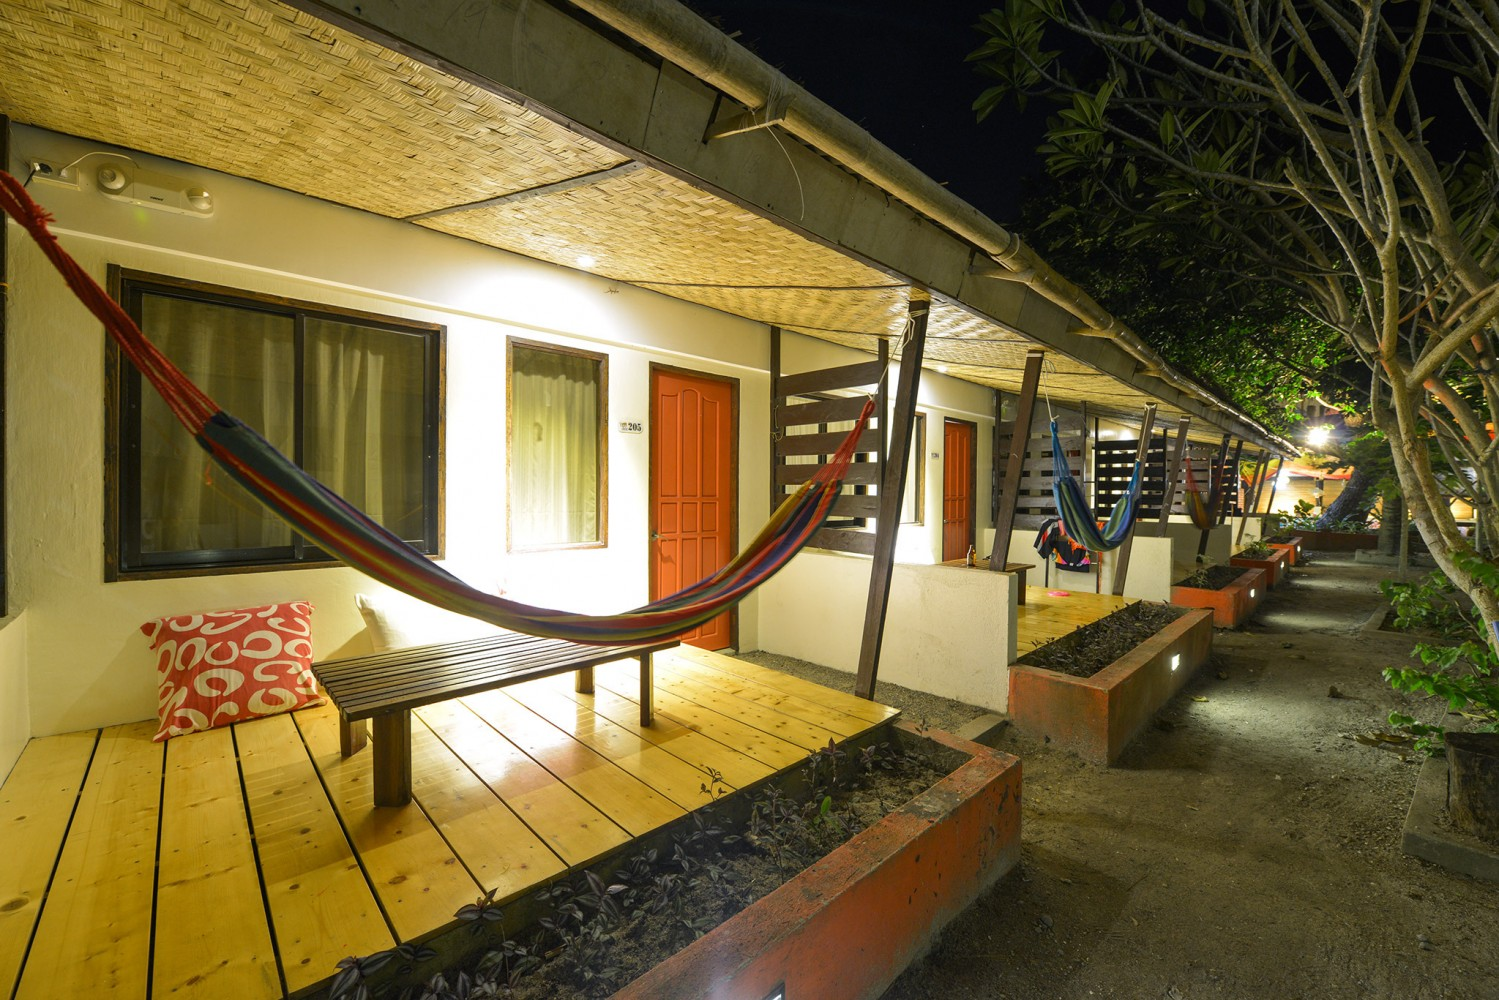 The Lazy Dog Bed And Breakfast Boracay Book Now # Muebles Nova Luxe Zacatecas